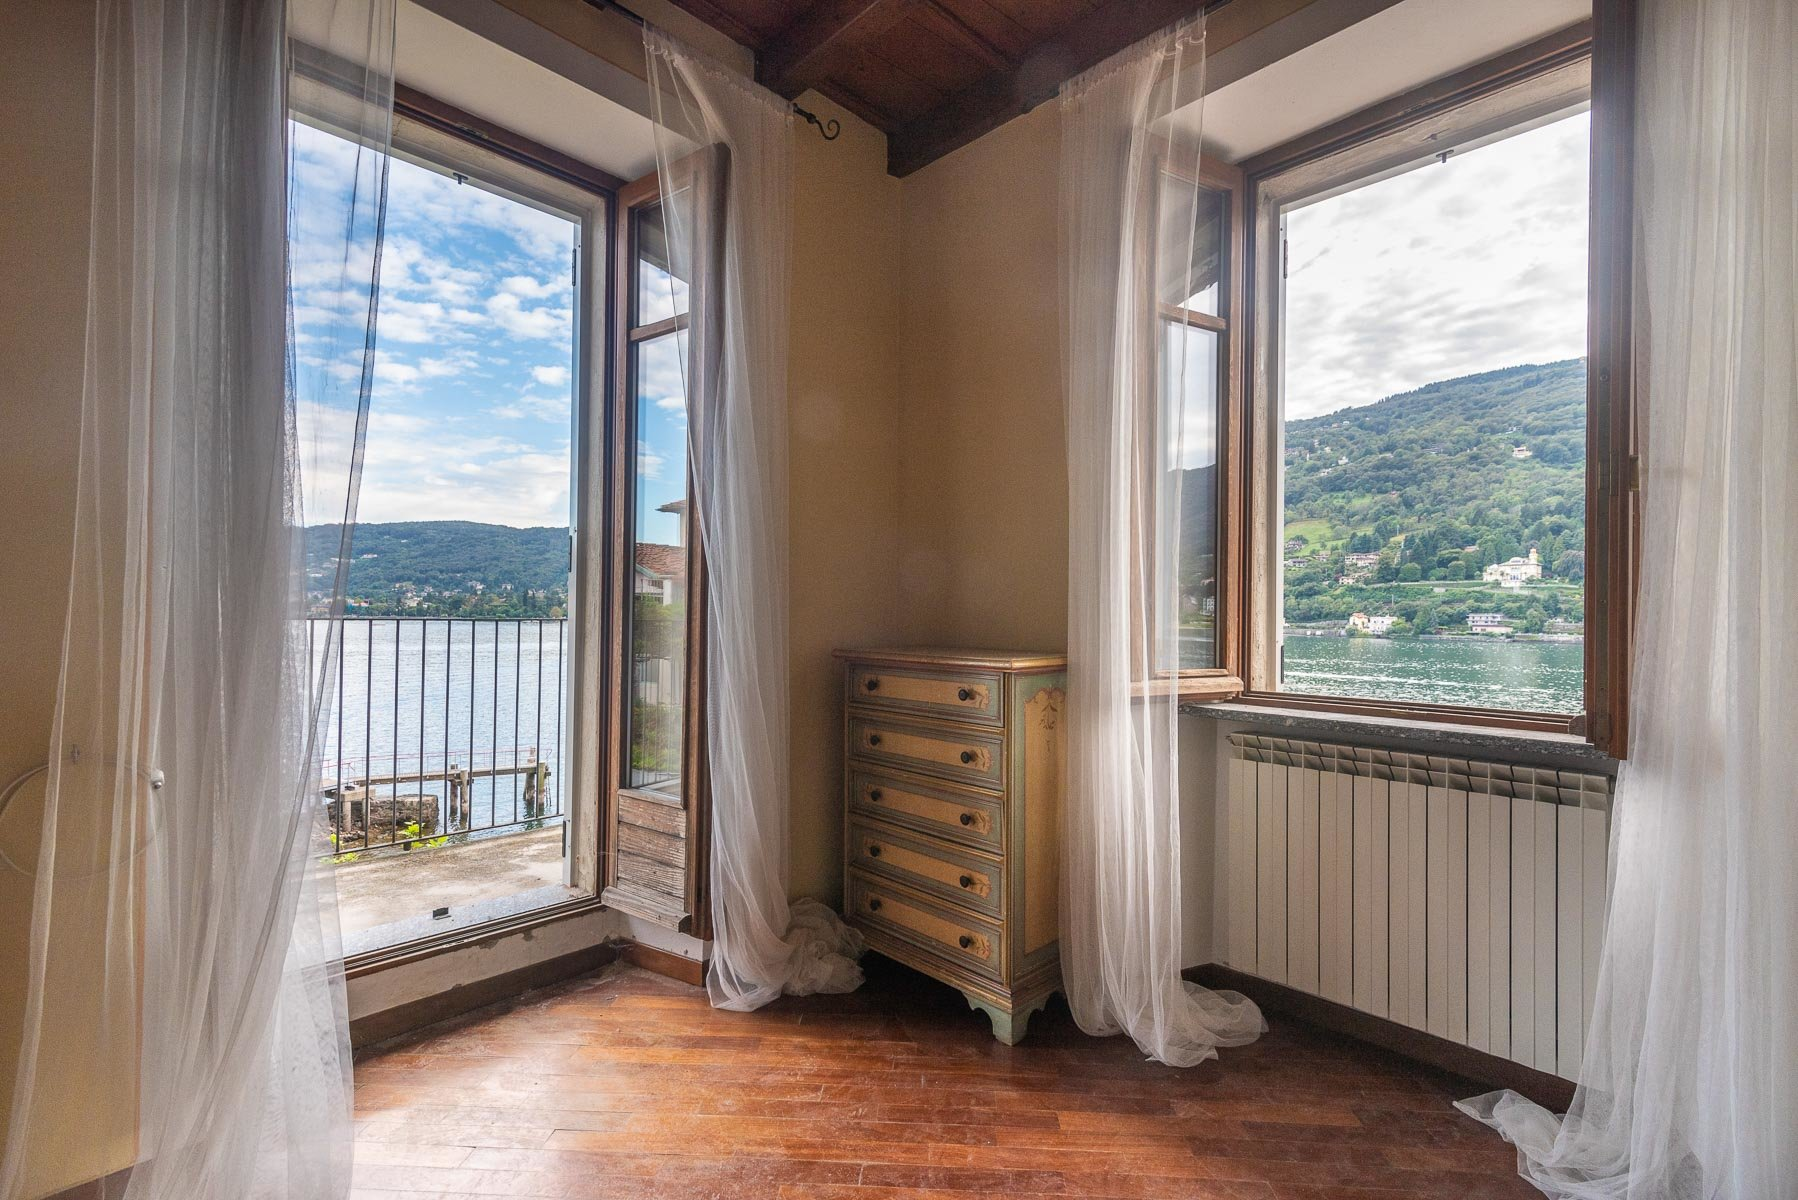 Apartment for sale in Pescatori Island, Stresa - bedroom with view